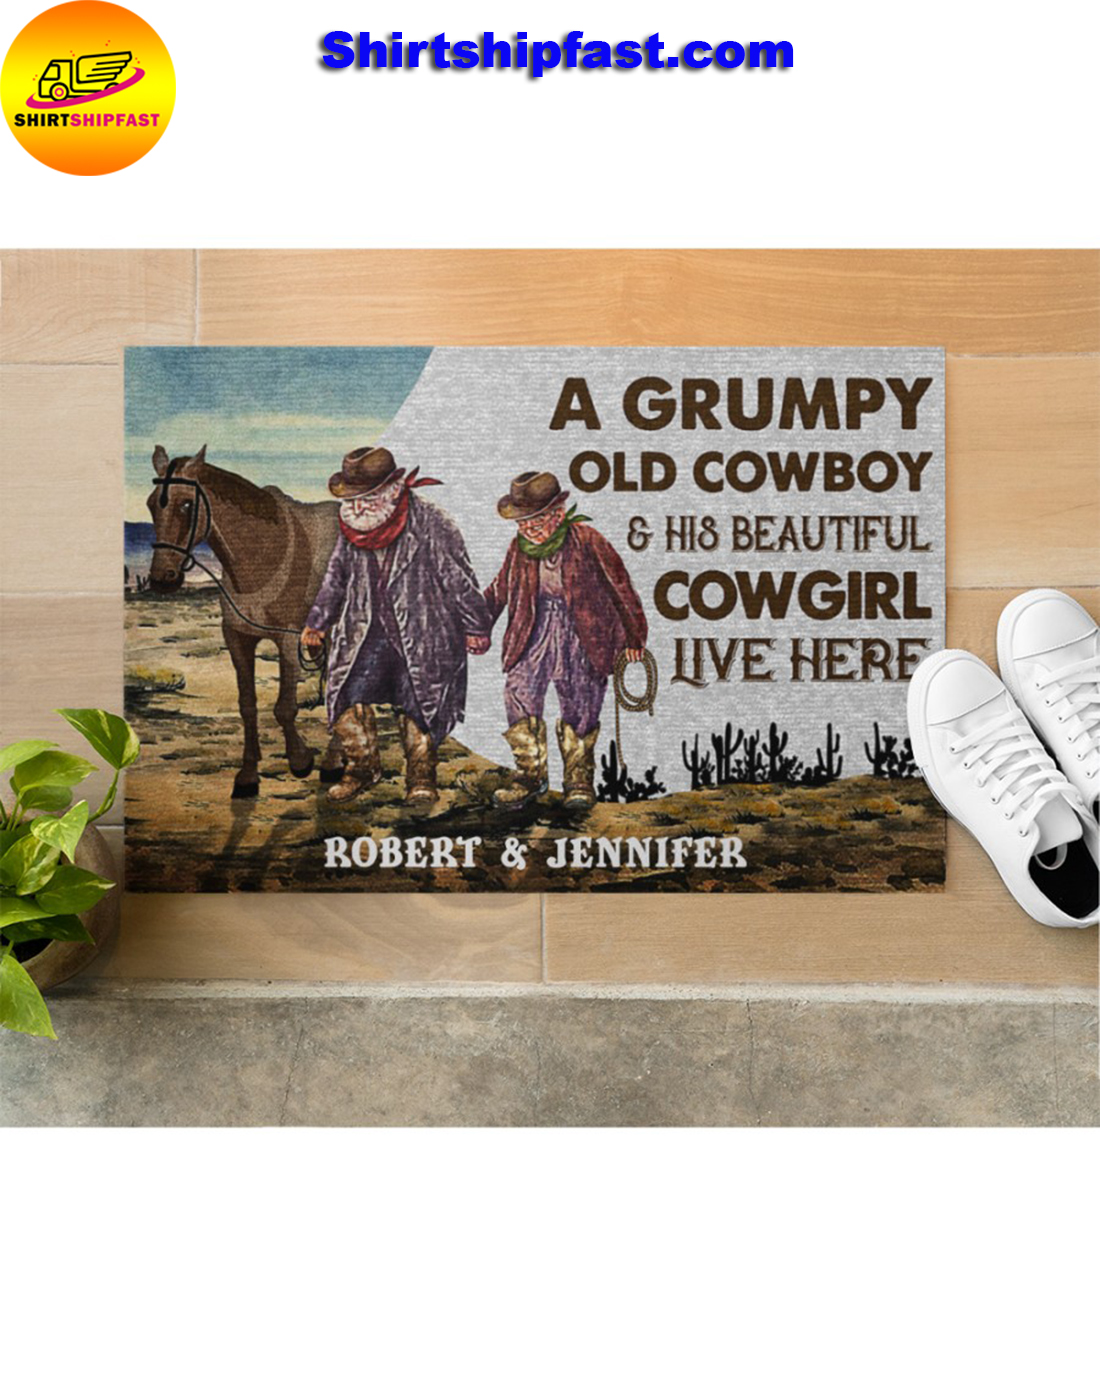 Personalized A grumpy old cowboy and his beautiful cowgirl live here doormat - Picture 3